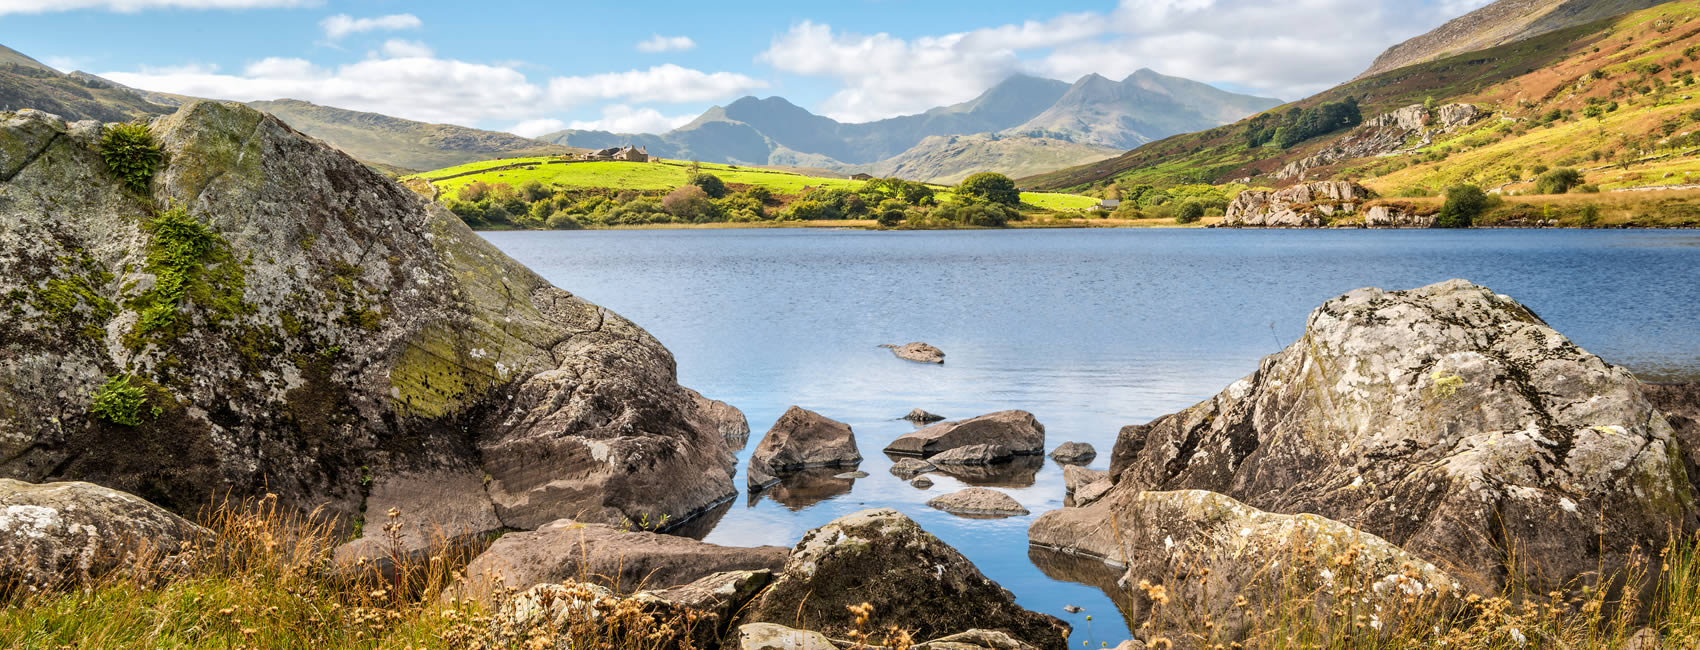 Snowdonia National Park in Wales